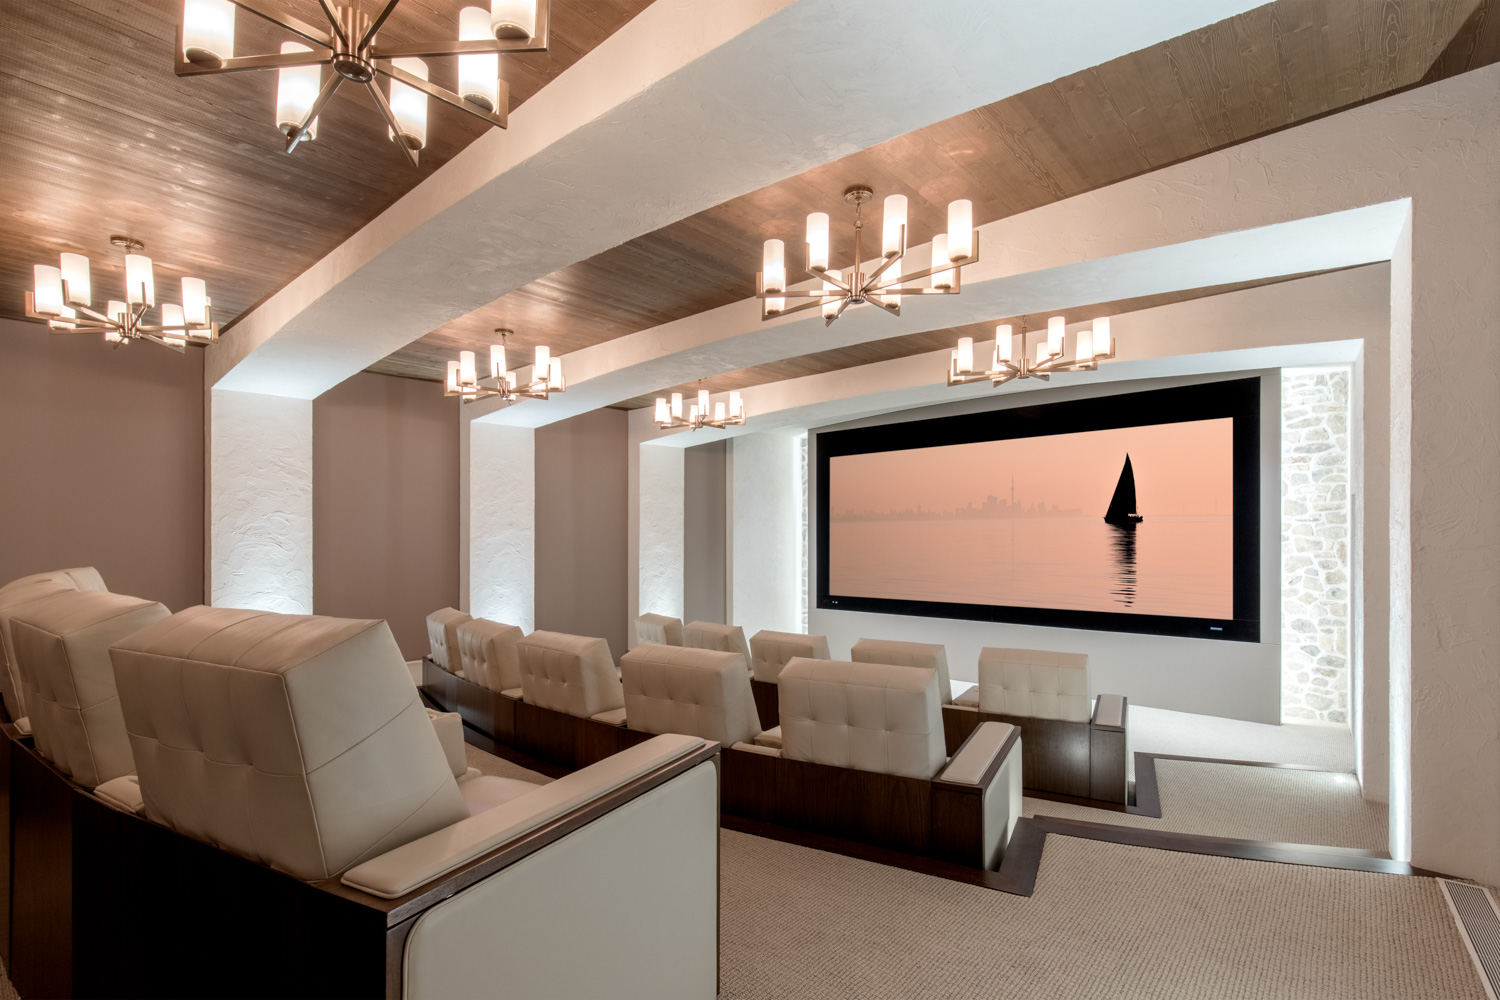 3-home-theater-theatre-installation-installer-big-screen-chanelier-professional-photography-photographer-custom-interior-design-designer-entertainment-system-ontario-canada-airbnb.jpg